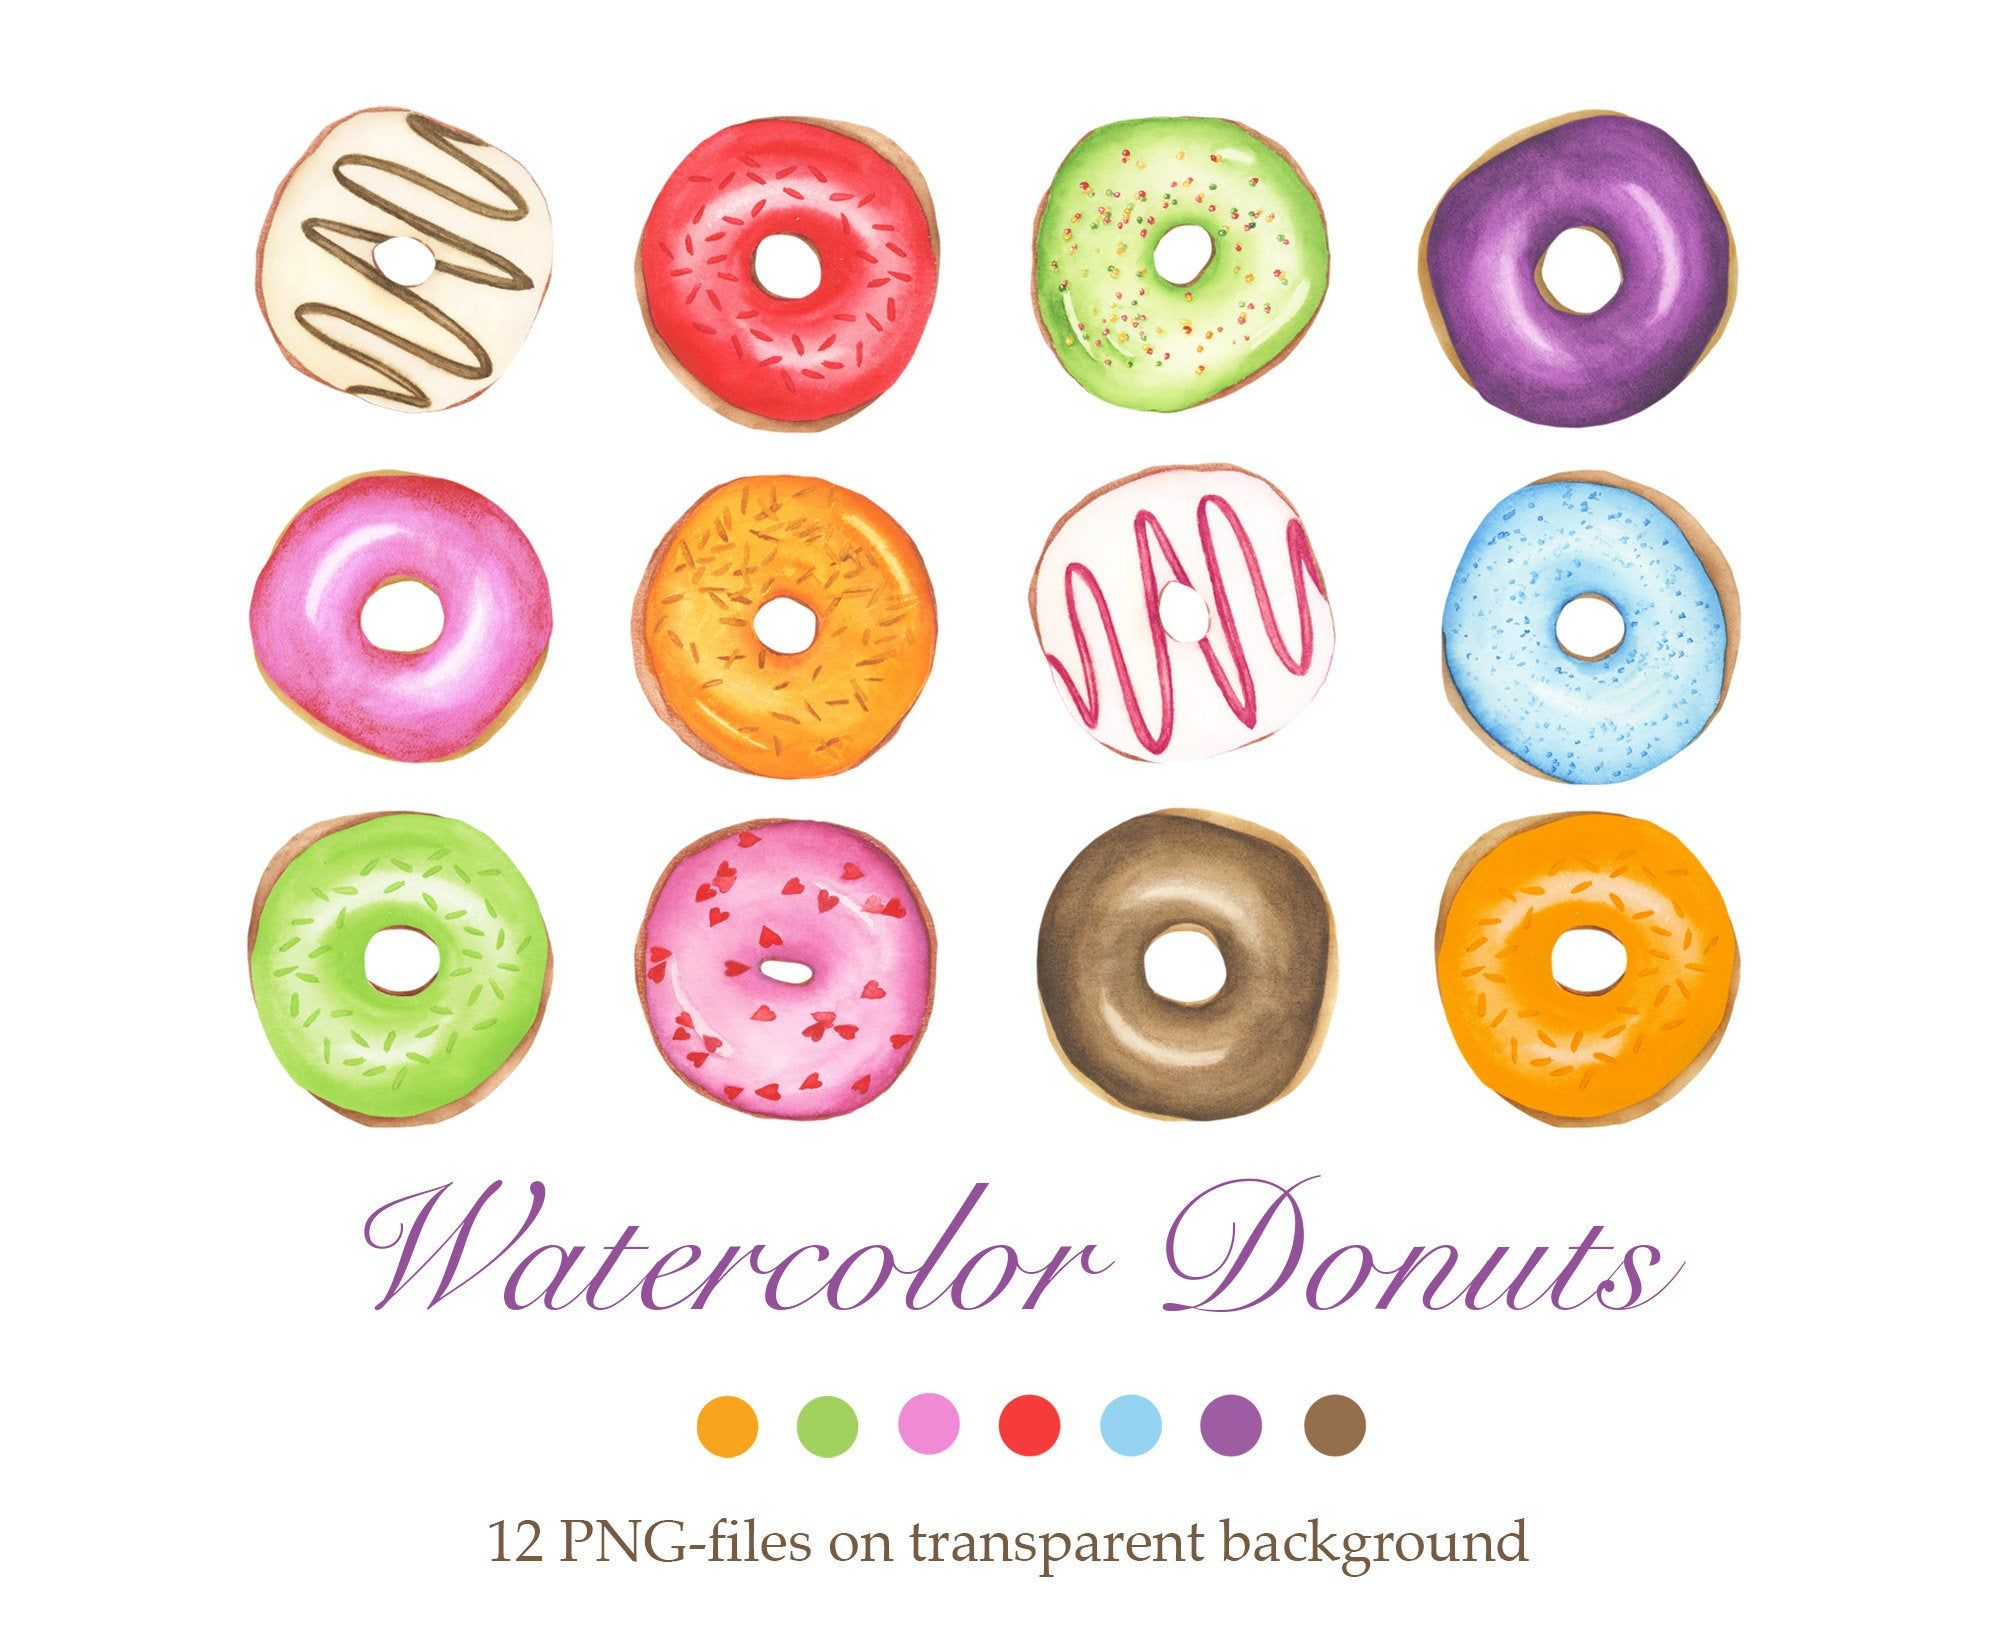 Watercolor Donut Clipart, Color Donuts, Bakery Clipart ... (2000 x 1636 Pixel)